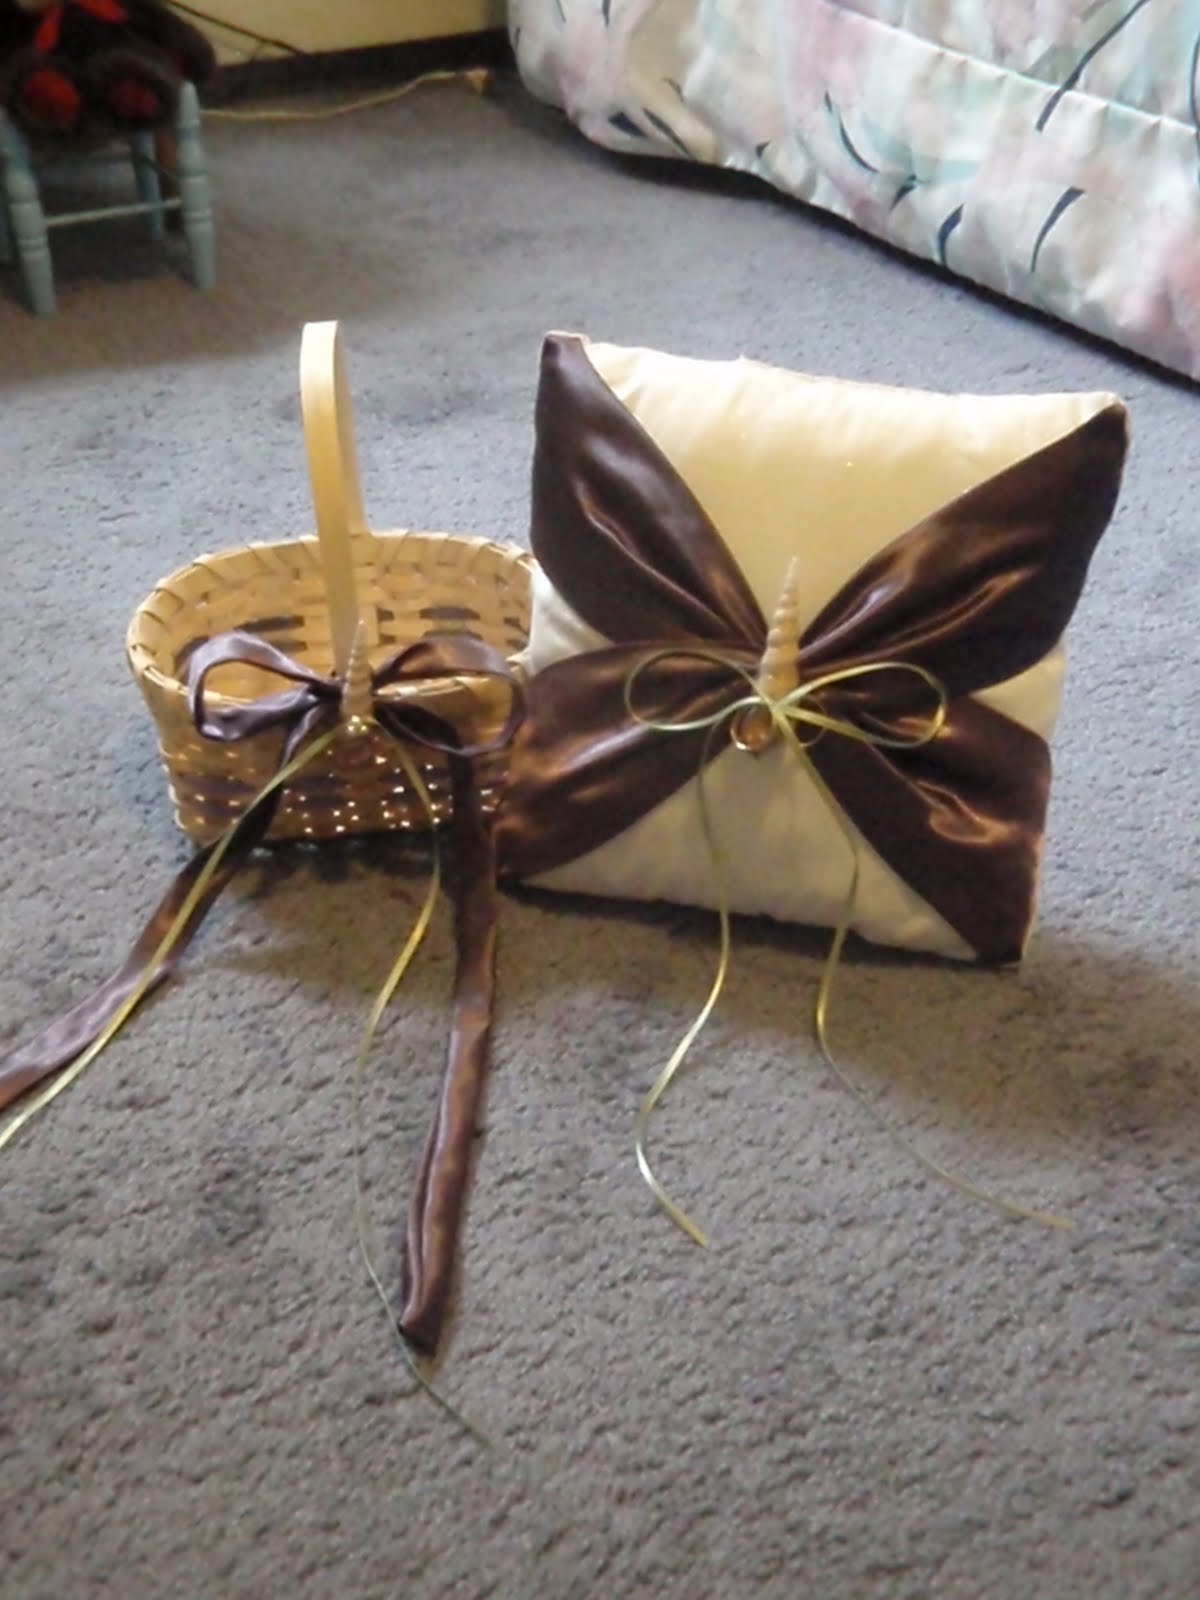 How To Make A Flower Girl Basket With Fabric : Our day in the making diy flower girl basket